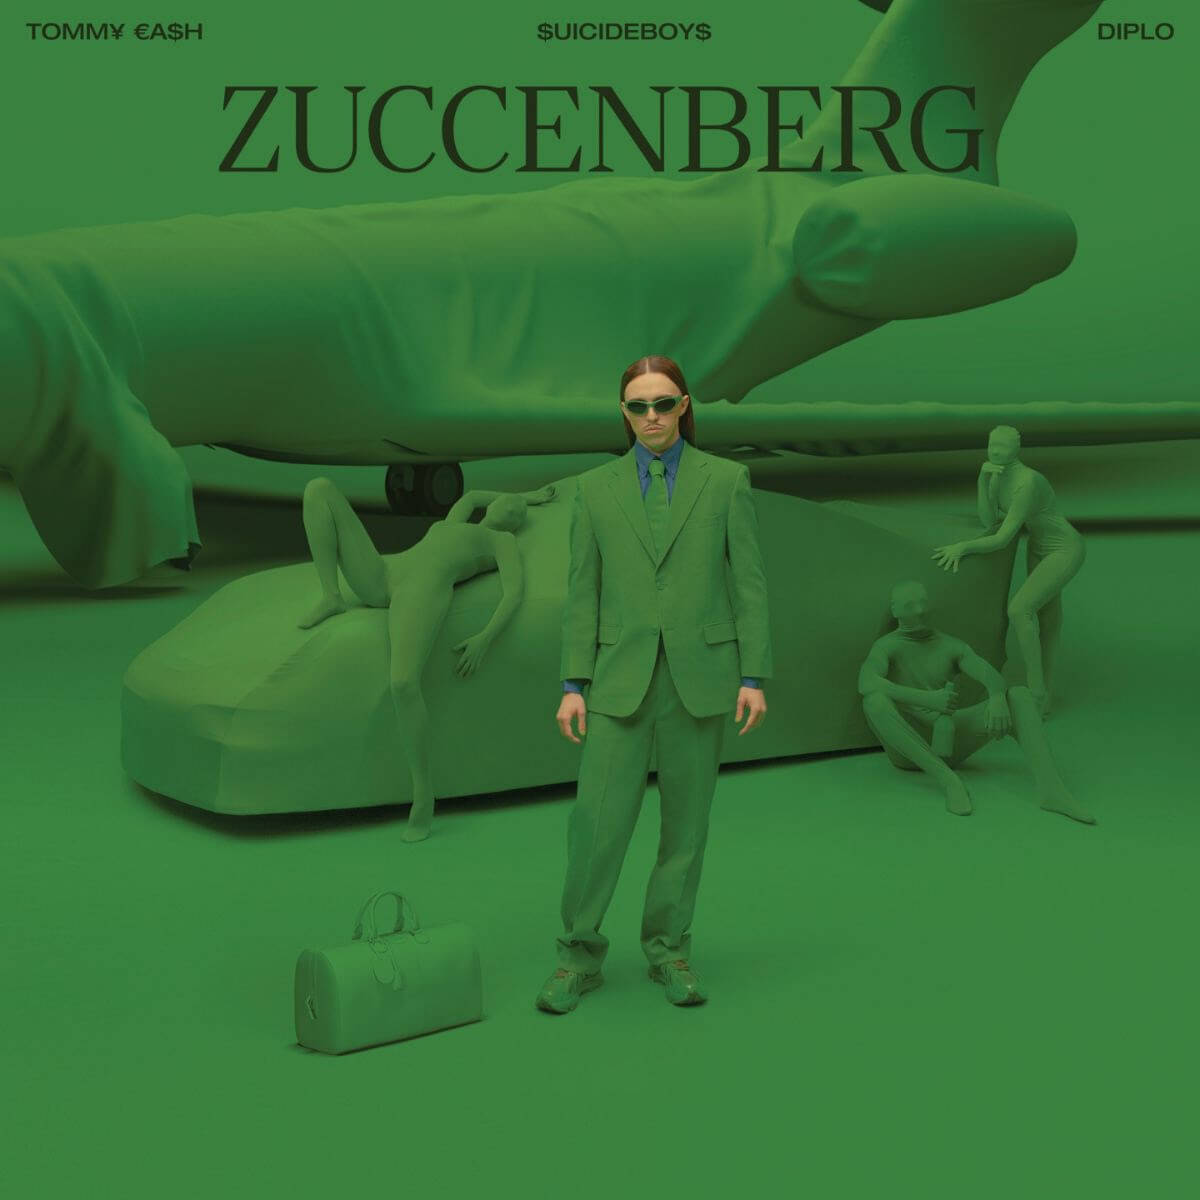 """""""ZUCCENBERG"""" by TOMM¥ €A$H is Northern Transmissions Song of the day. The track is now available via streaming services"""